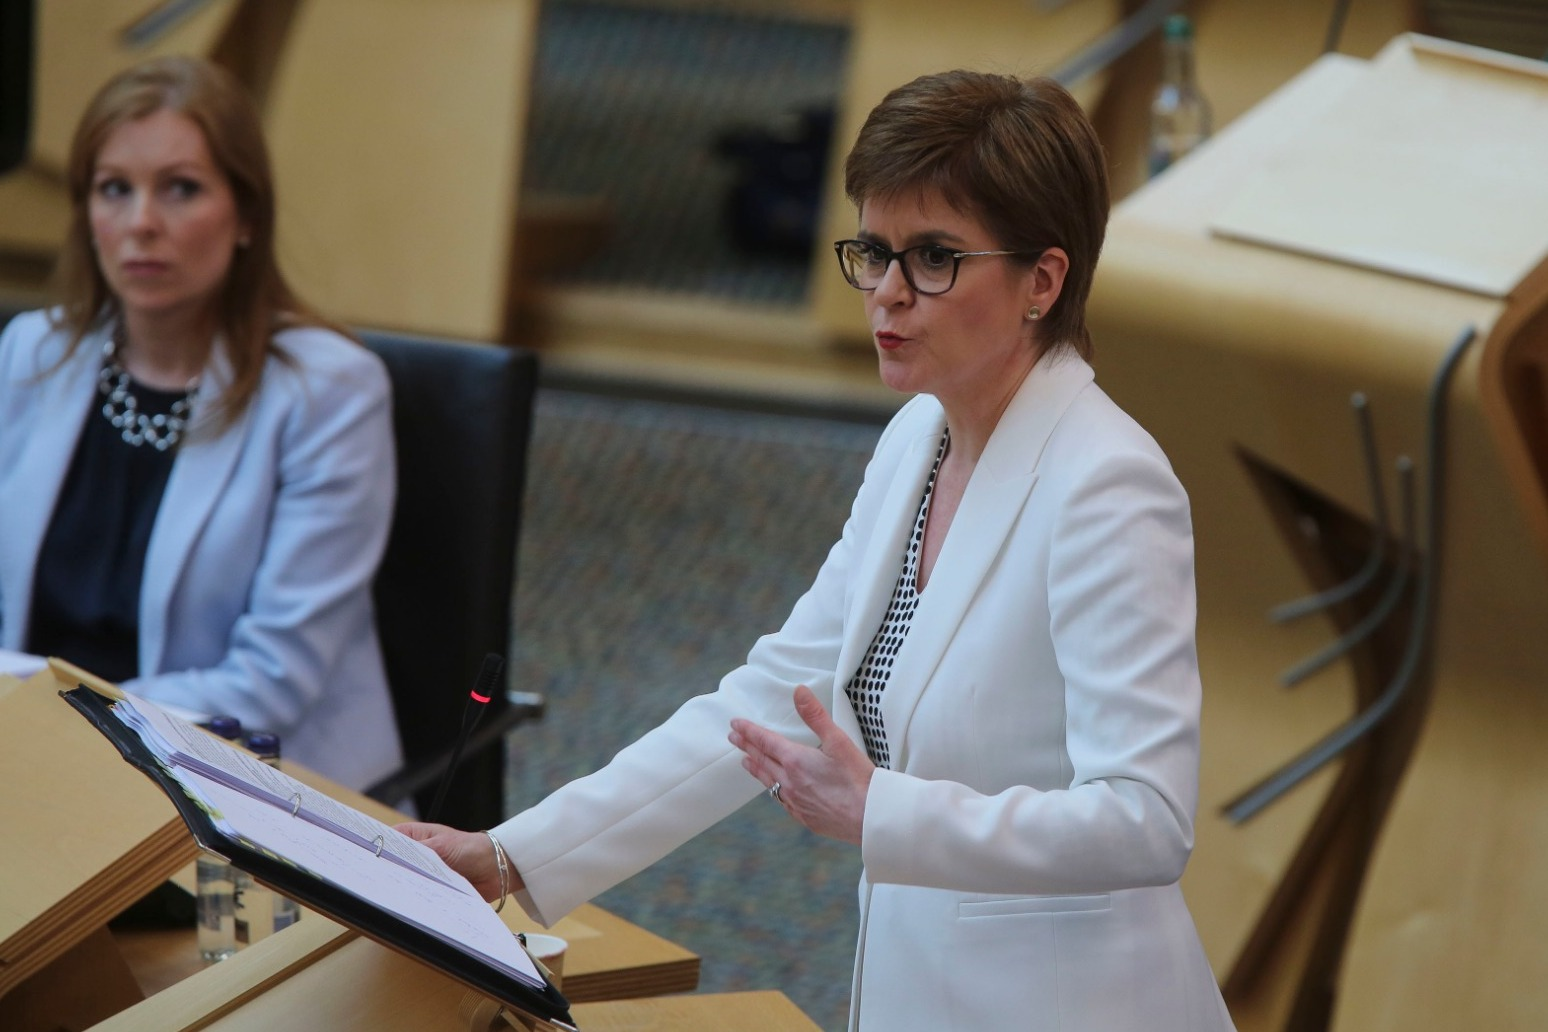 Scottish Government announces an easing of lockdown measures